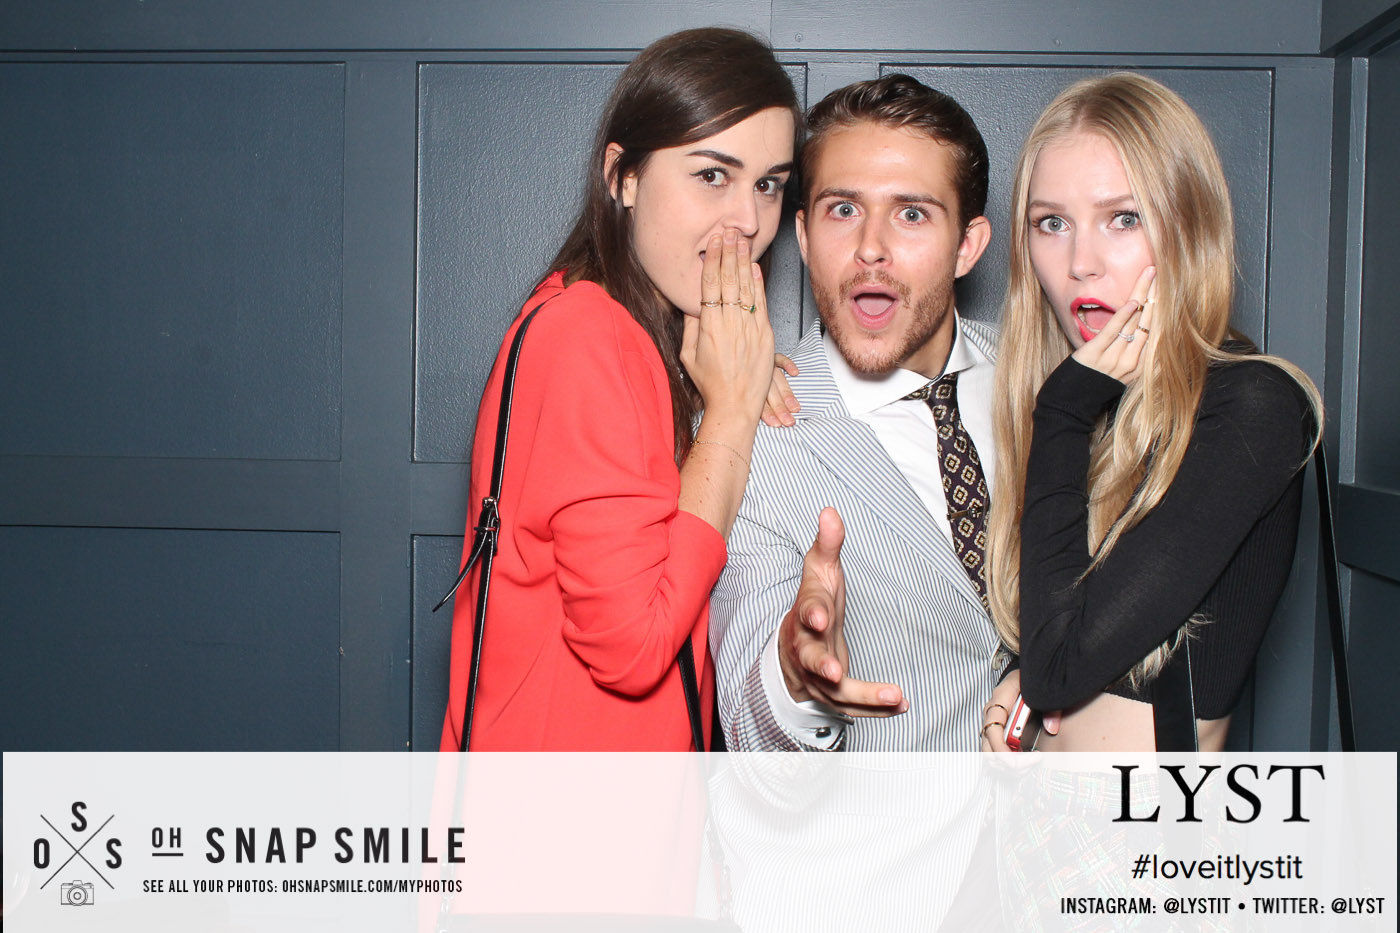 Andy, Adam & Carolina at the Bloglovin party